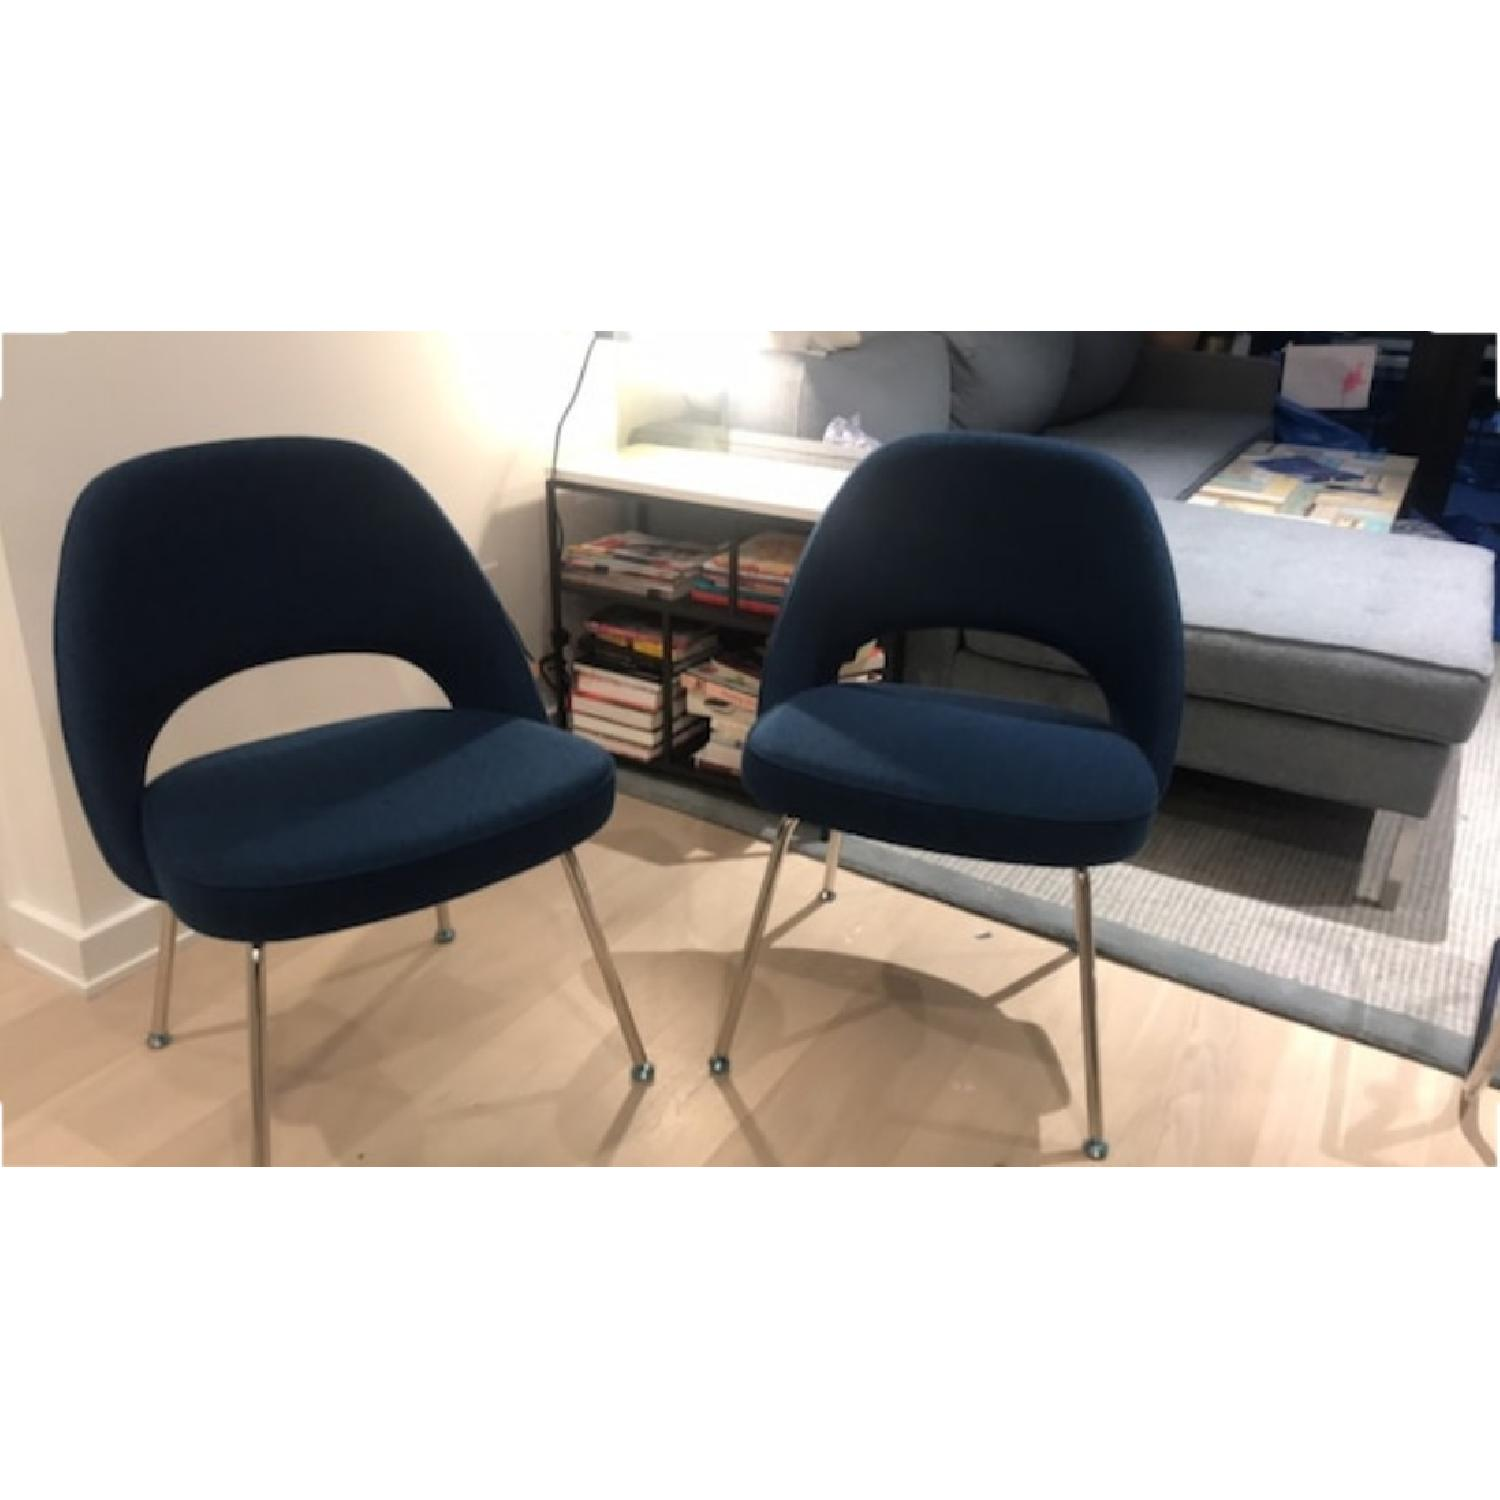 Rove Concepts Executive Side Chairs in Boucle Wool Twilight - image-1